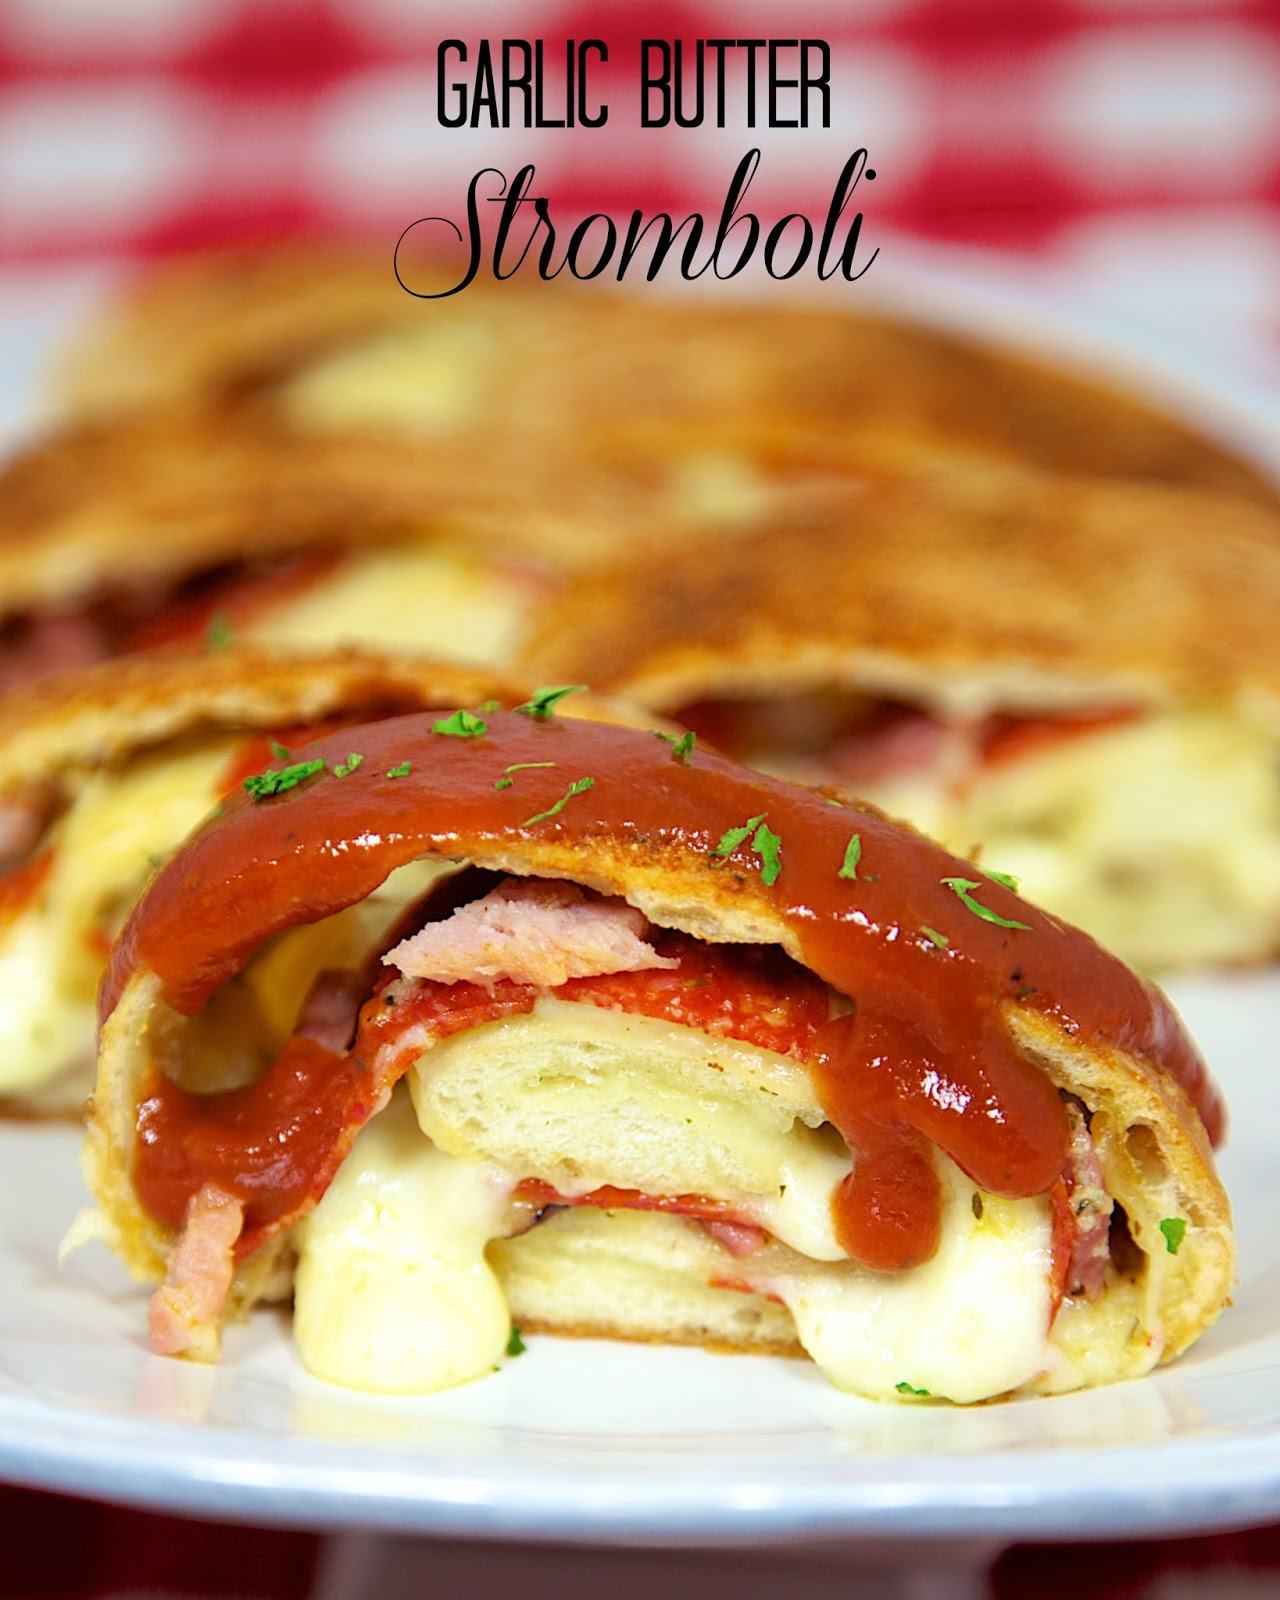 Garlic Butter Stromboli - pizza dough slathered with garlic butter and stuffed with pepperoni, ham and mozzarella. Serve with warm pizza sauce.